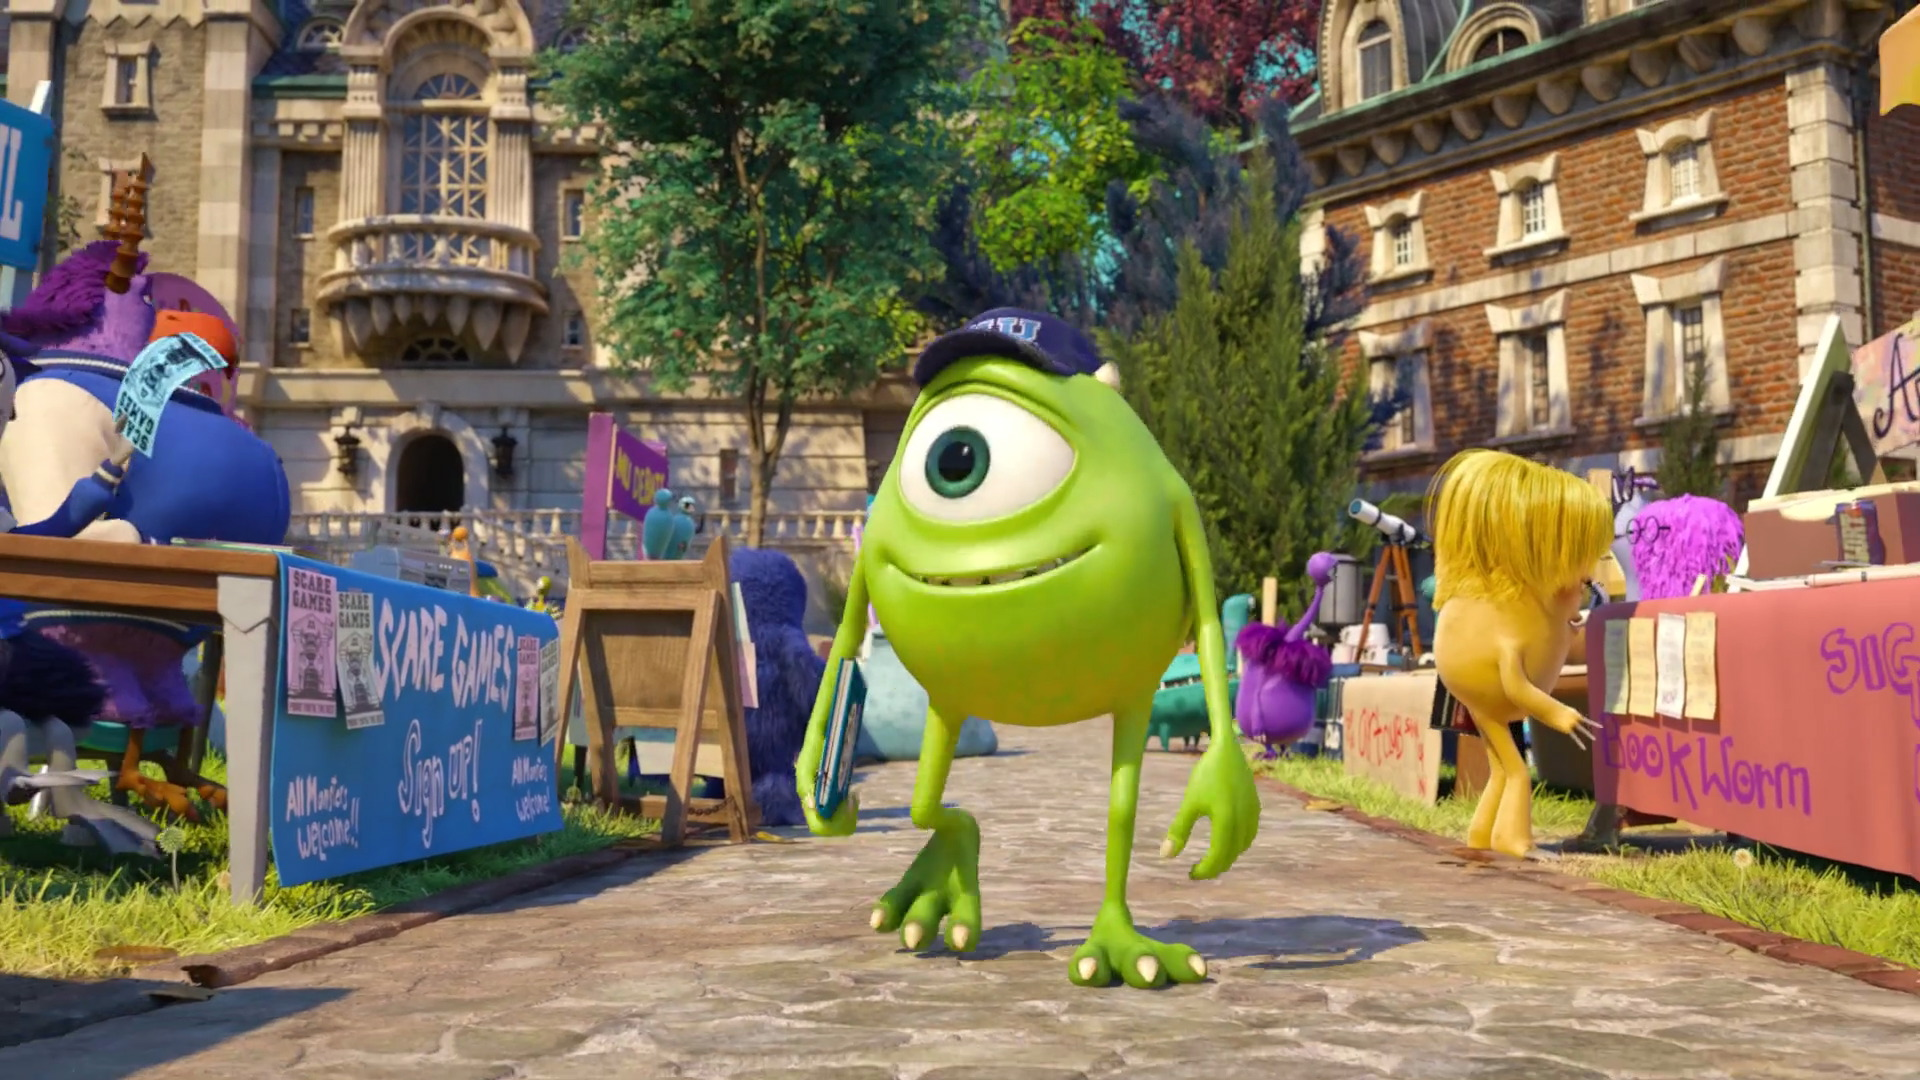 Monster Inc Wallpaper Iphone 6 Monsters University Wallpapers High Quality Download Free